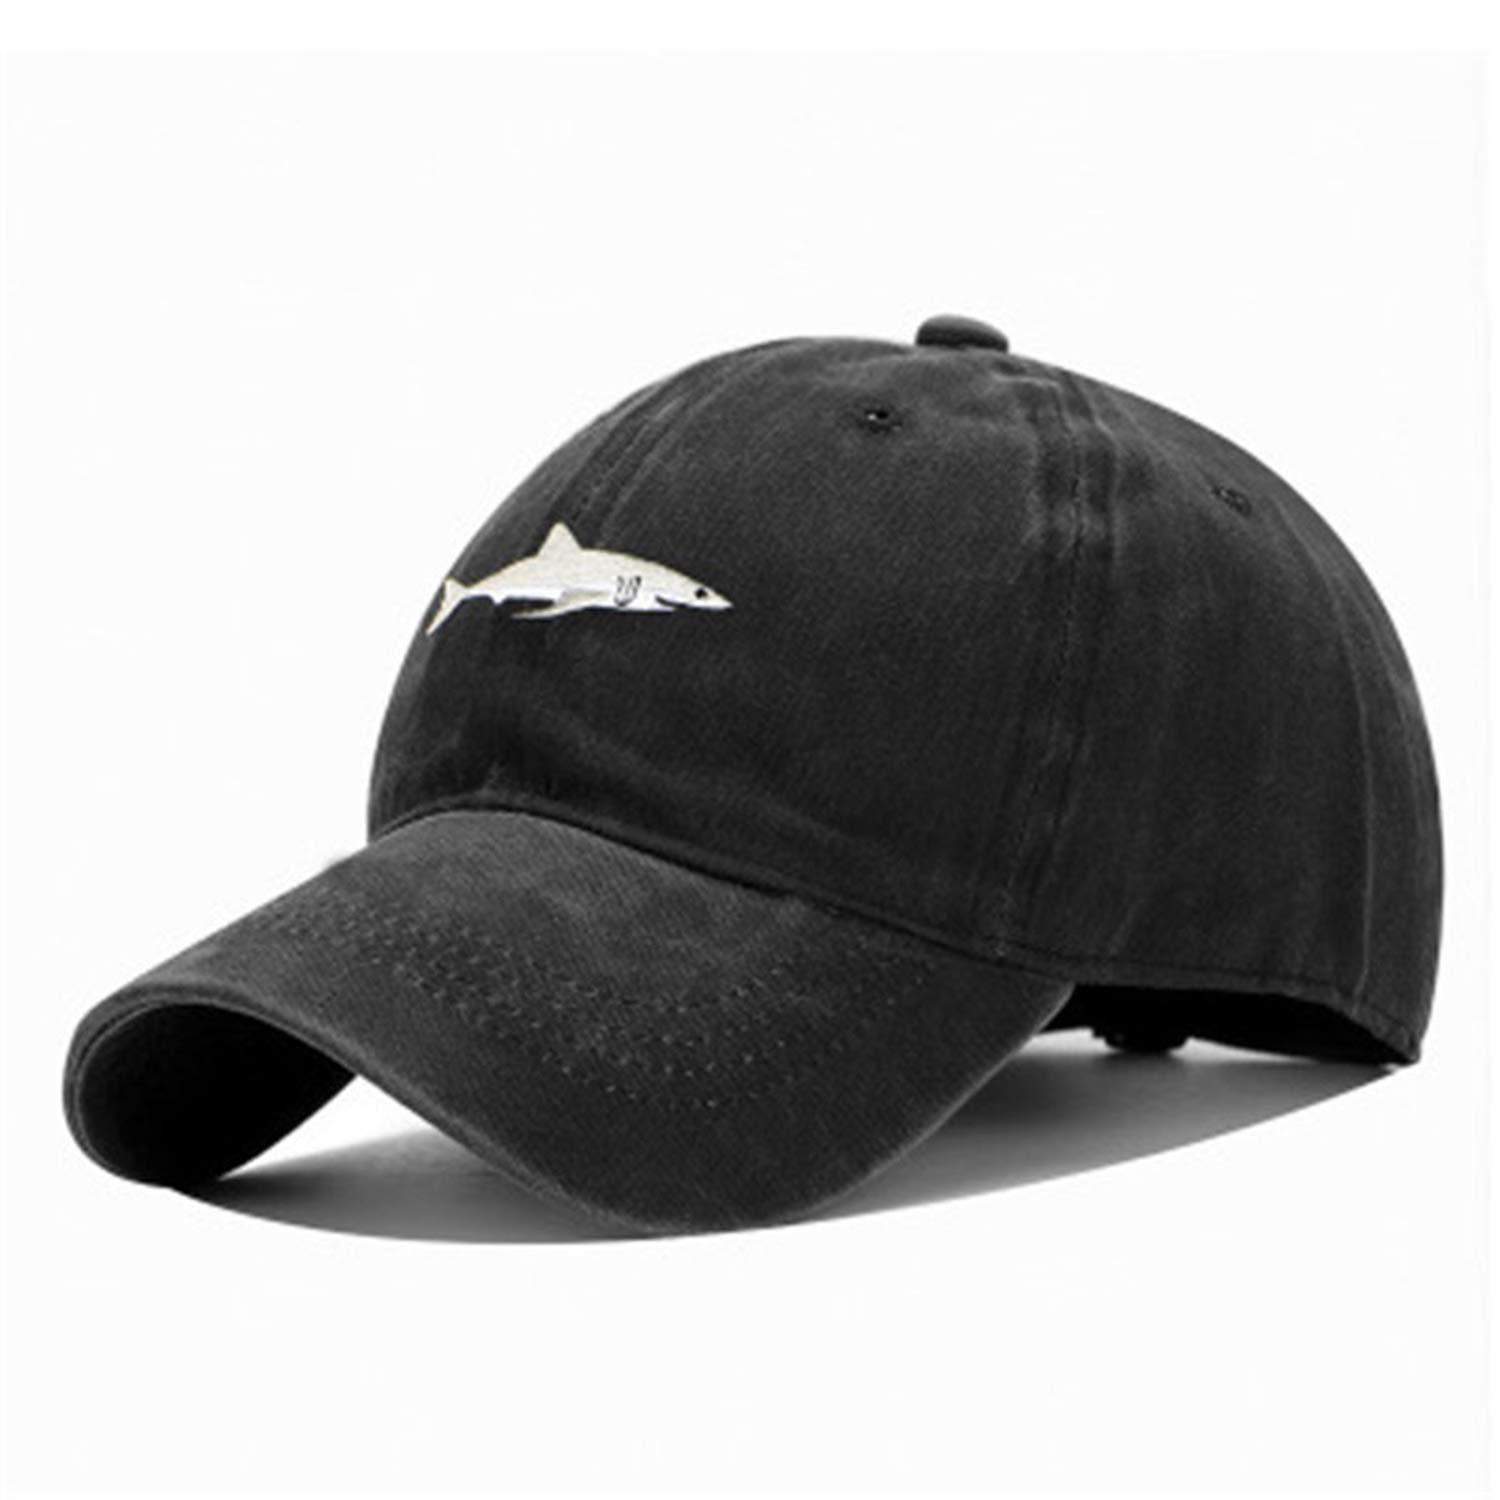 Baseball caps Men and Women Hats Shark Embroidery Popular Baseball Hats